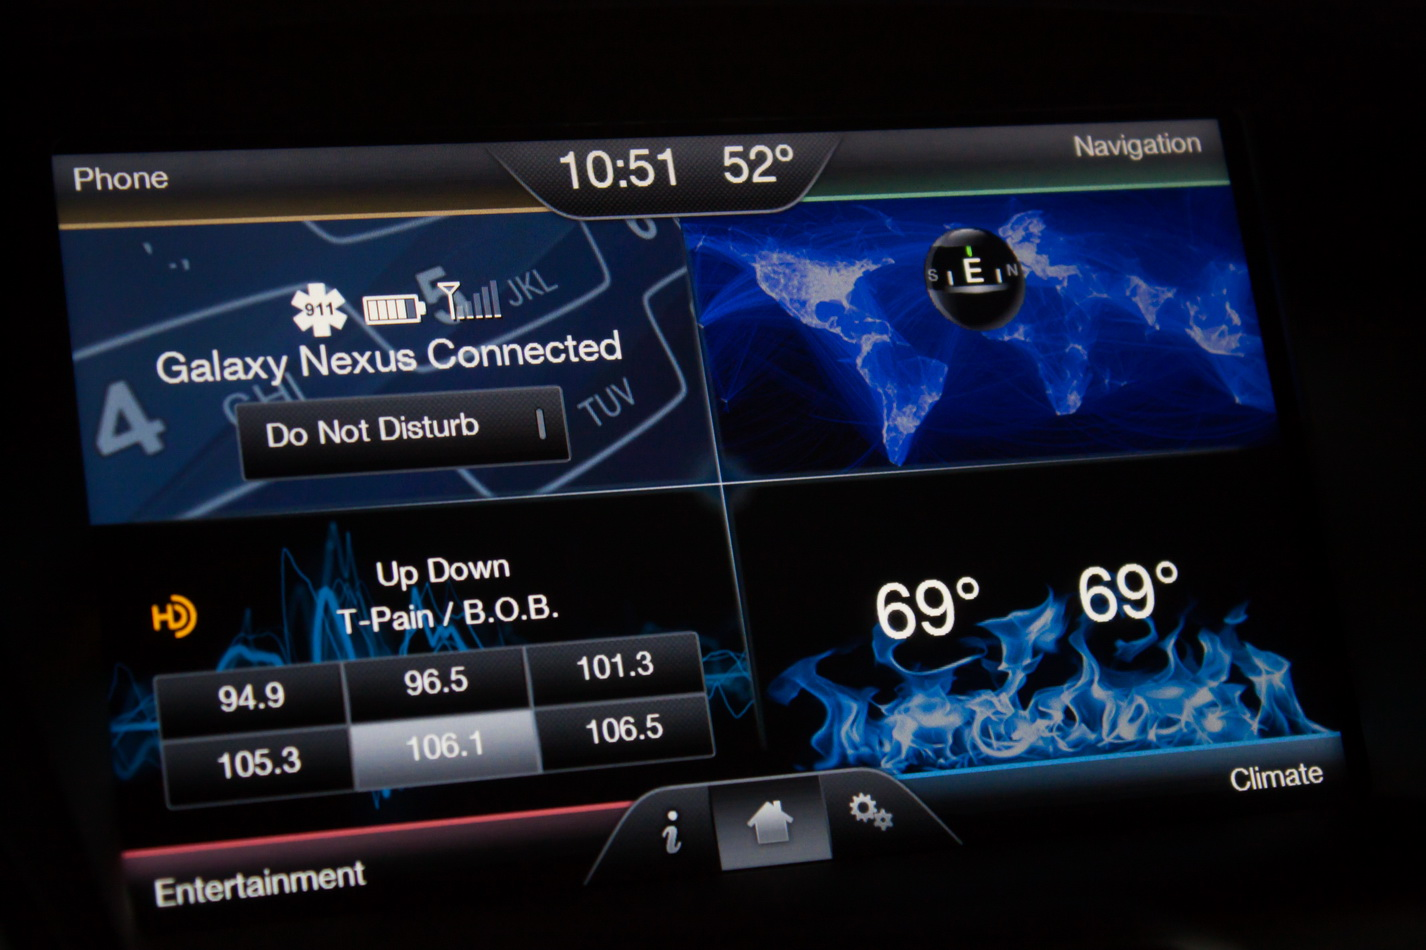 Ford Sync Wallpaper Ideas Cute Cool Wallpapers